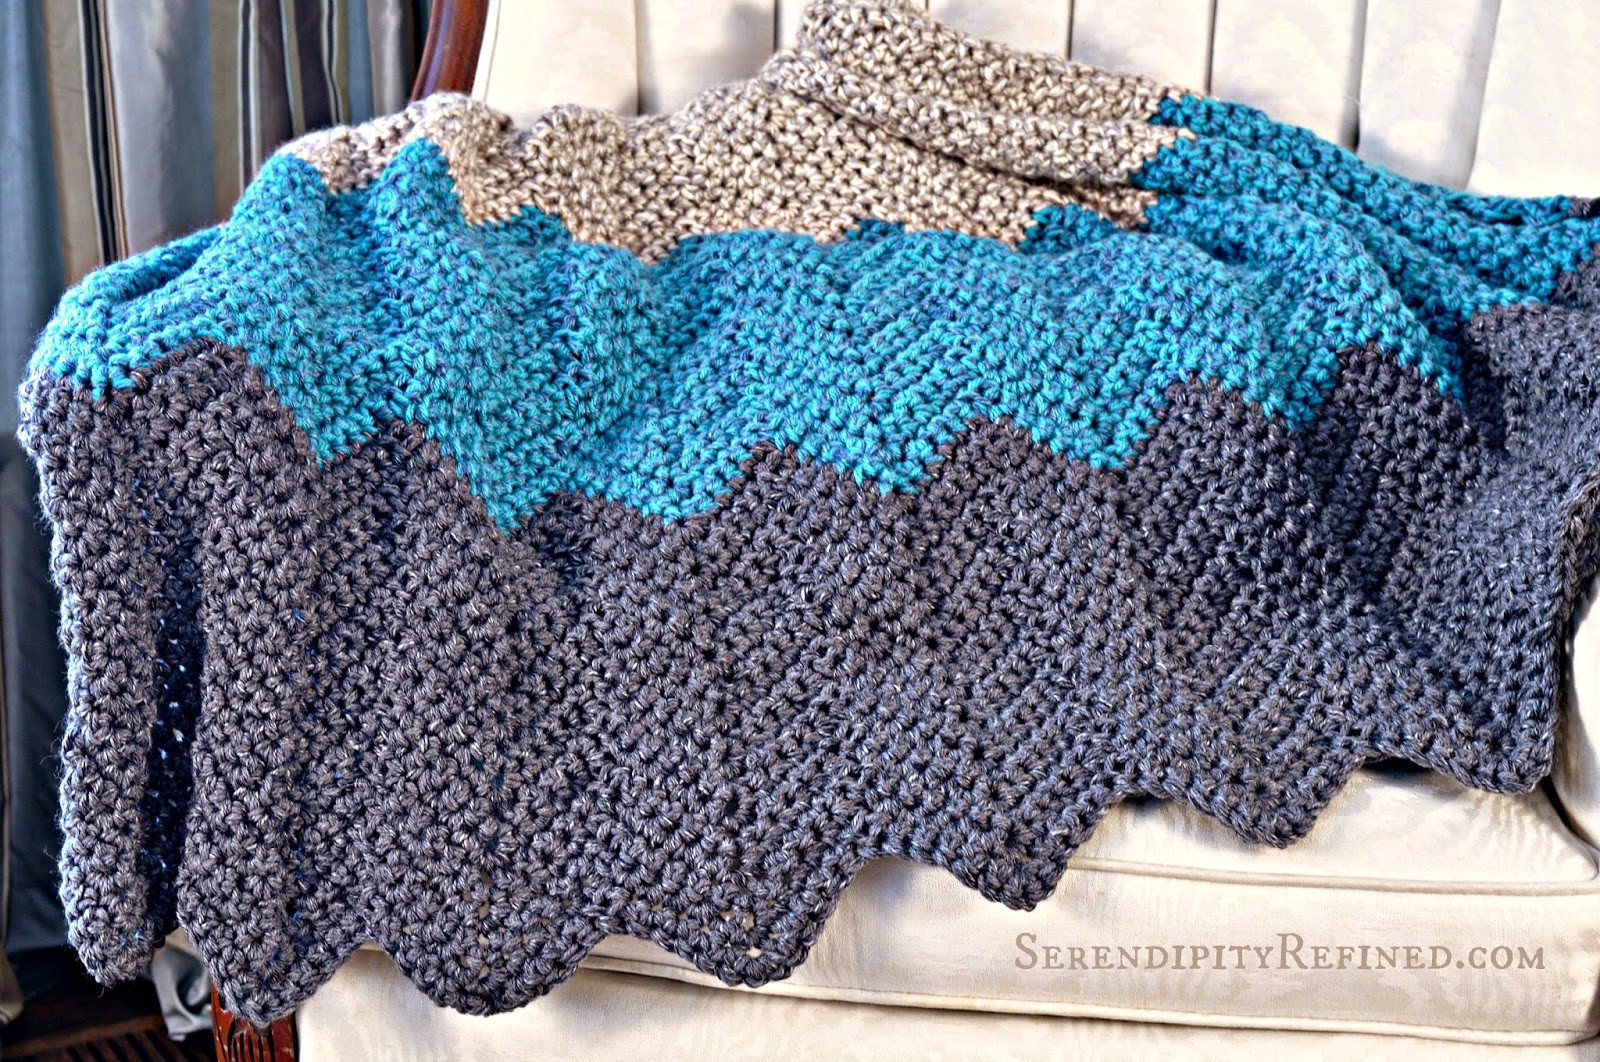 Crochet Throws Patterns Unique Easy Crochet Throw Patterns for Beginners Of Wonderful 44 Images Crochet Throws Patterns